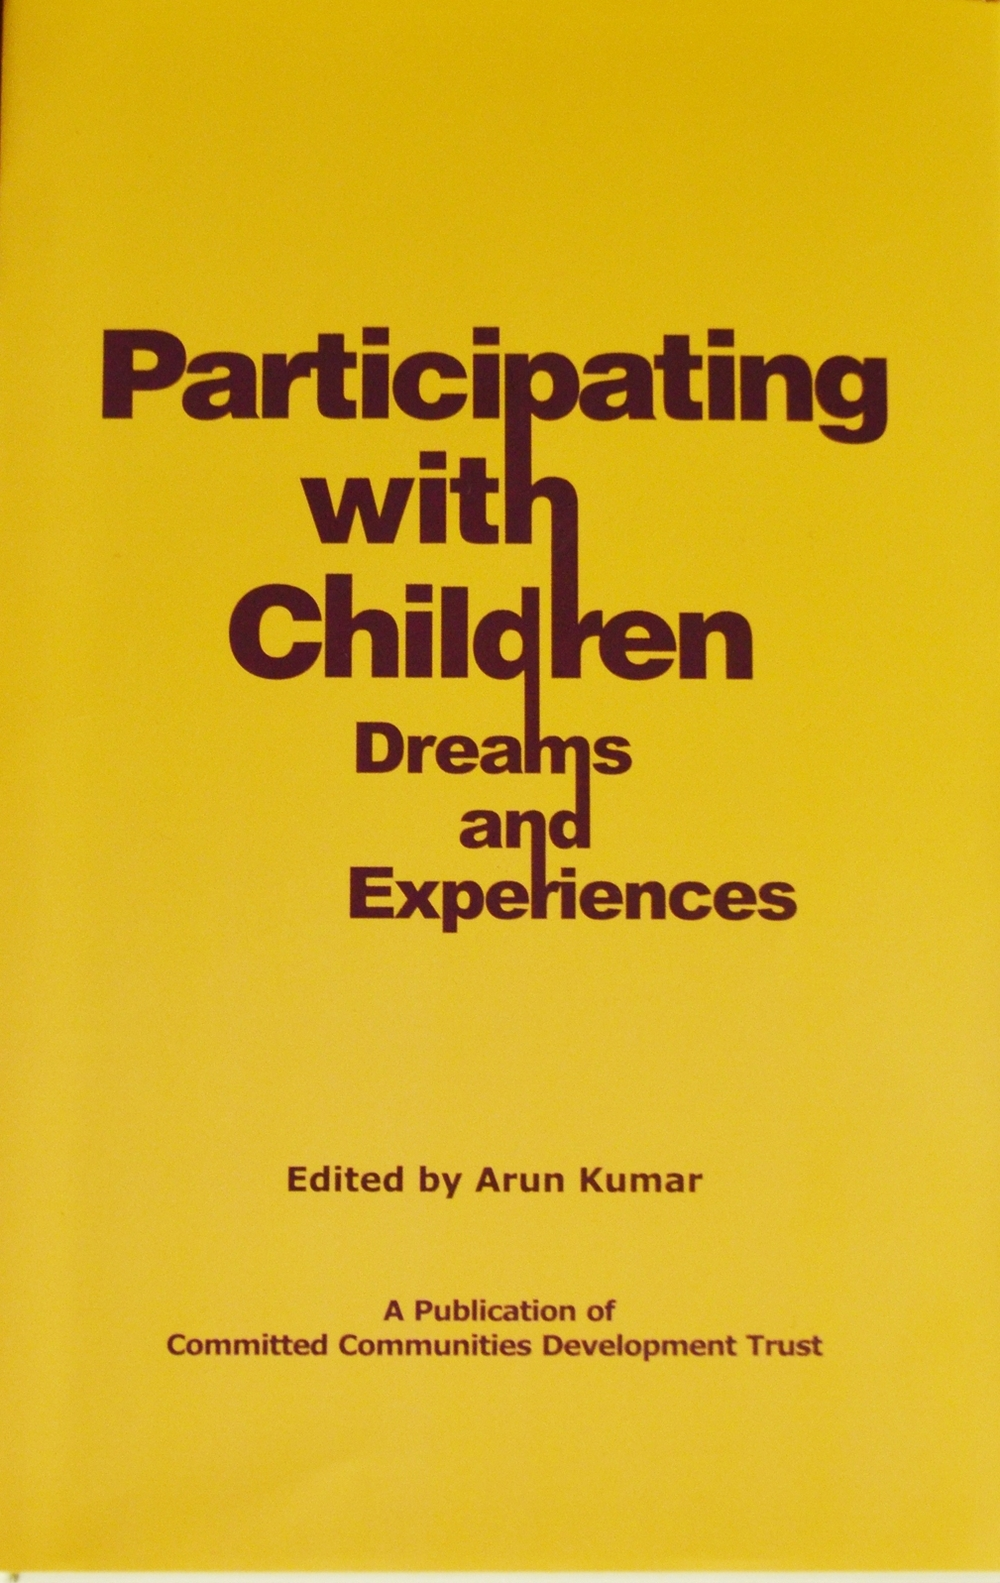 An outcome of a National-level deliberation hosted by CCDT in 2011, the book brings out visions and experiences of 12 leading organizations